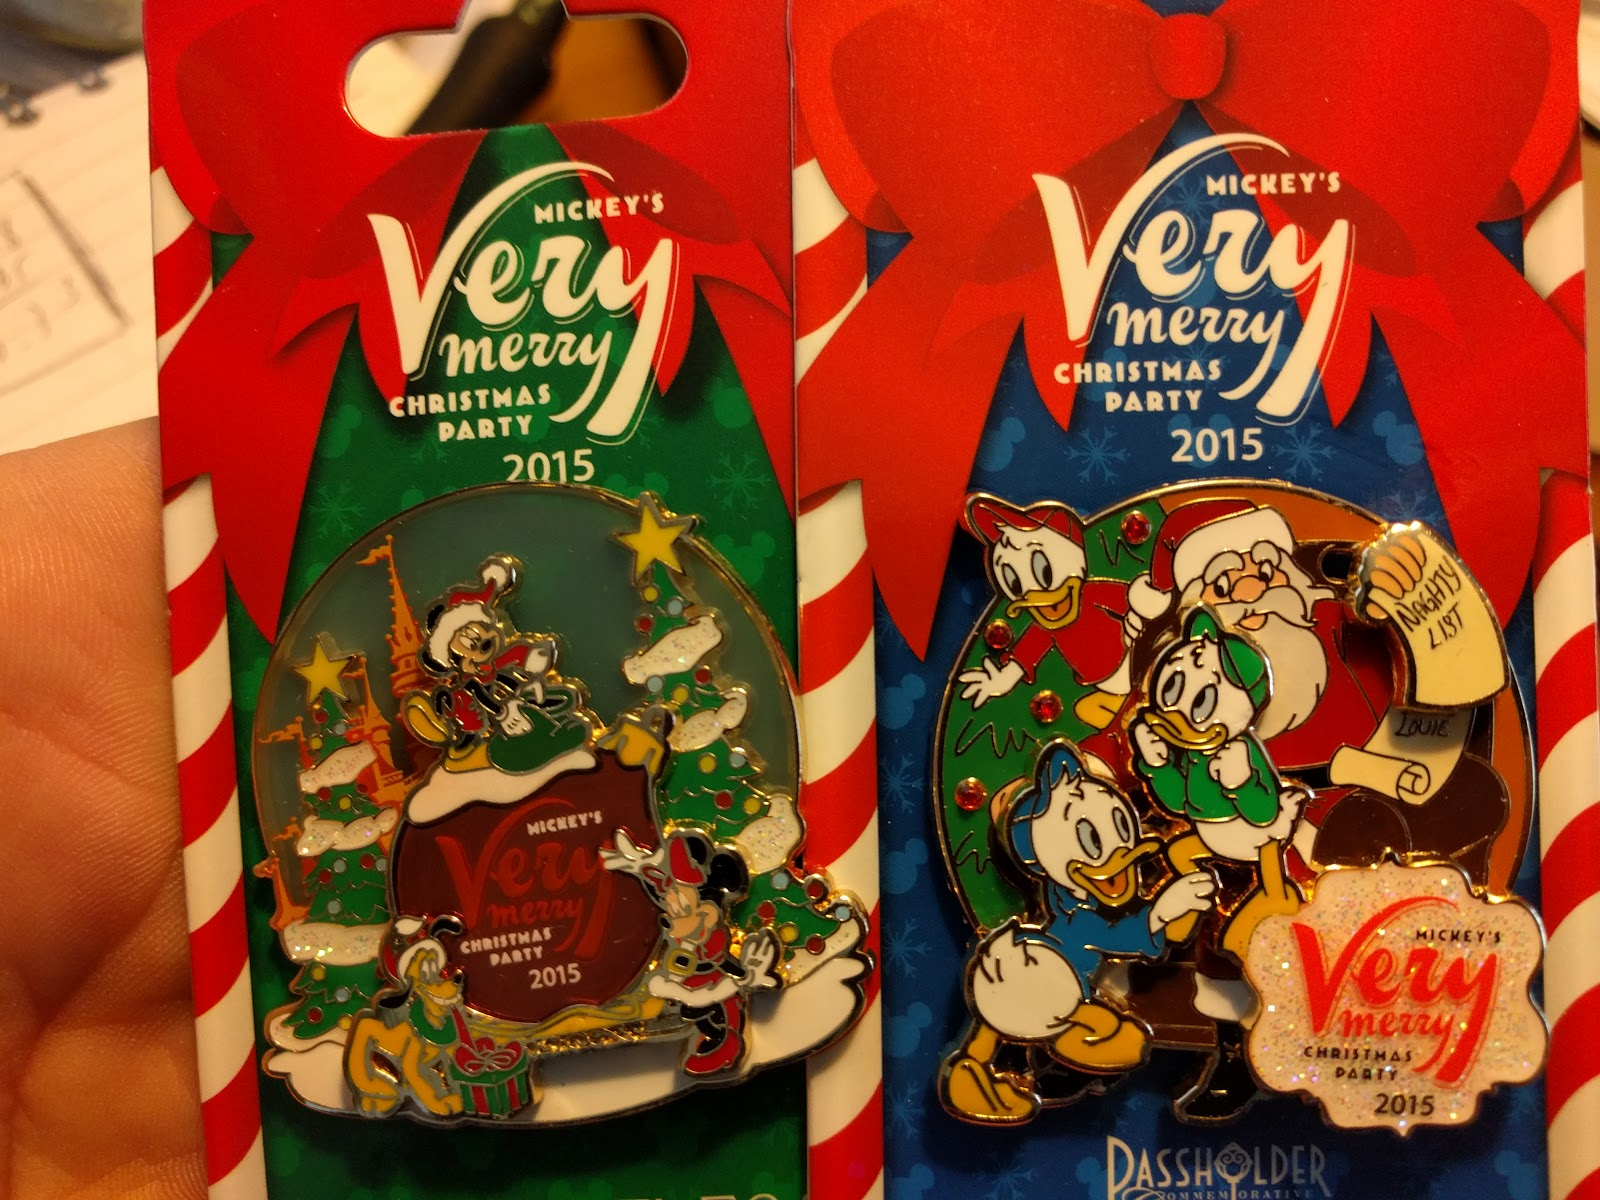 2 more mickeys very merry christmas party pins 2015 edition